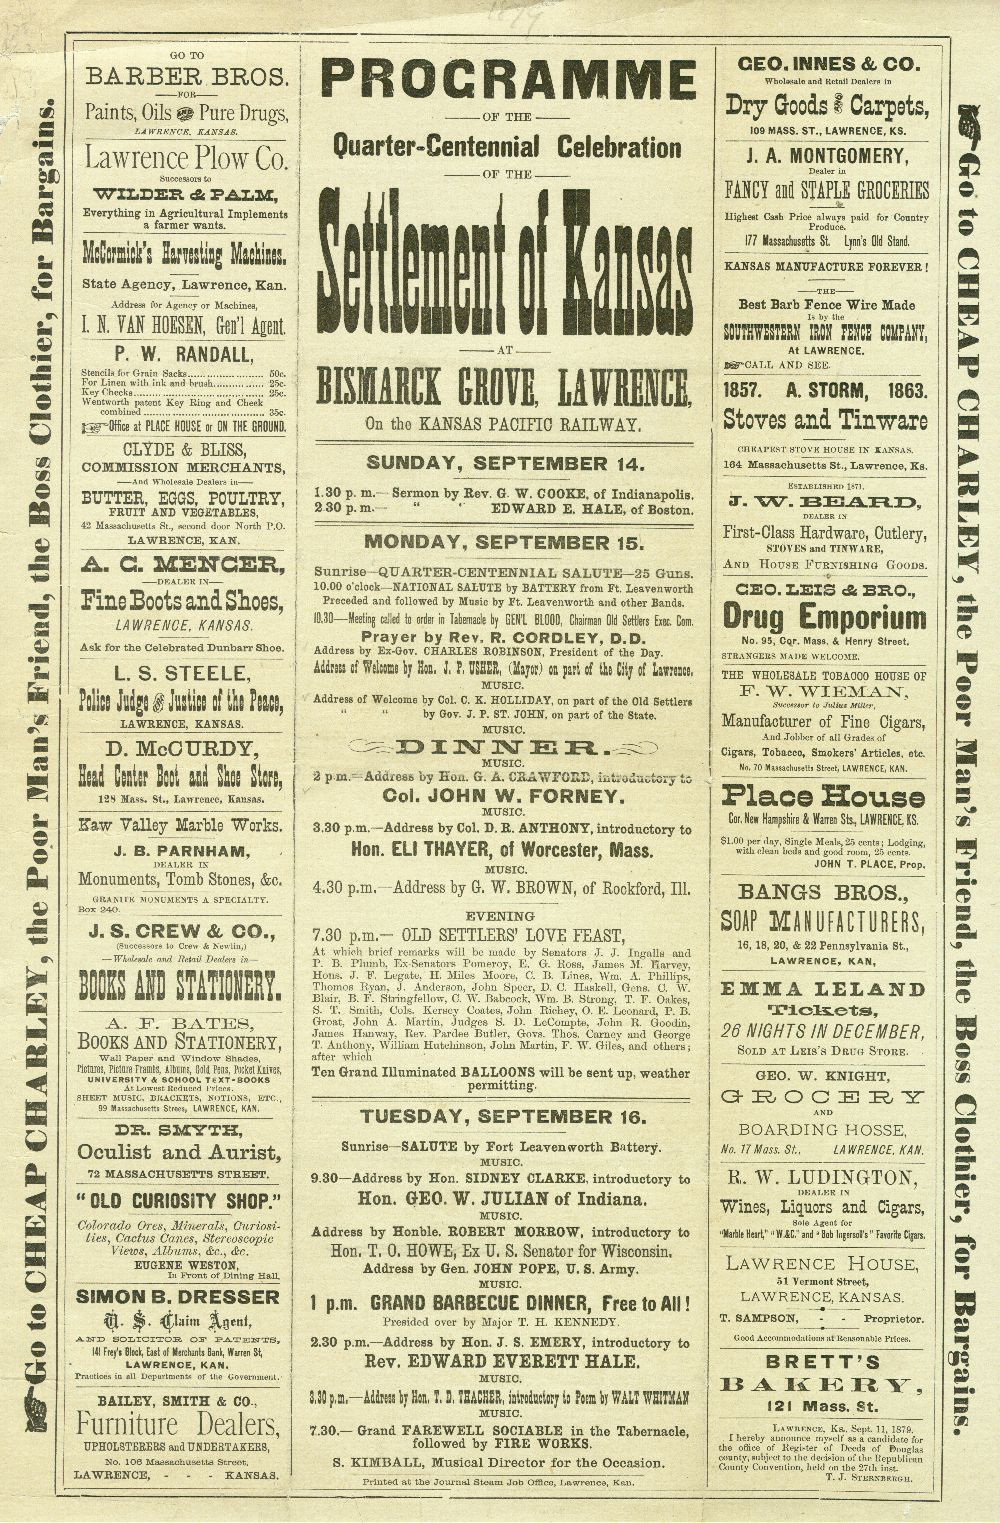 Programme of the Quarter-Centennial Celebration of the Settlement of Kansas at Bismarck Grove, Lawrence, on the Kansas Pacific Railway